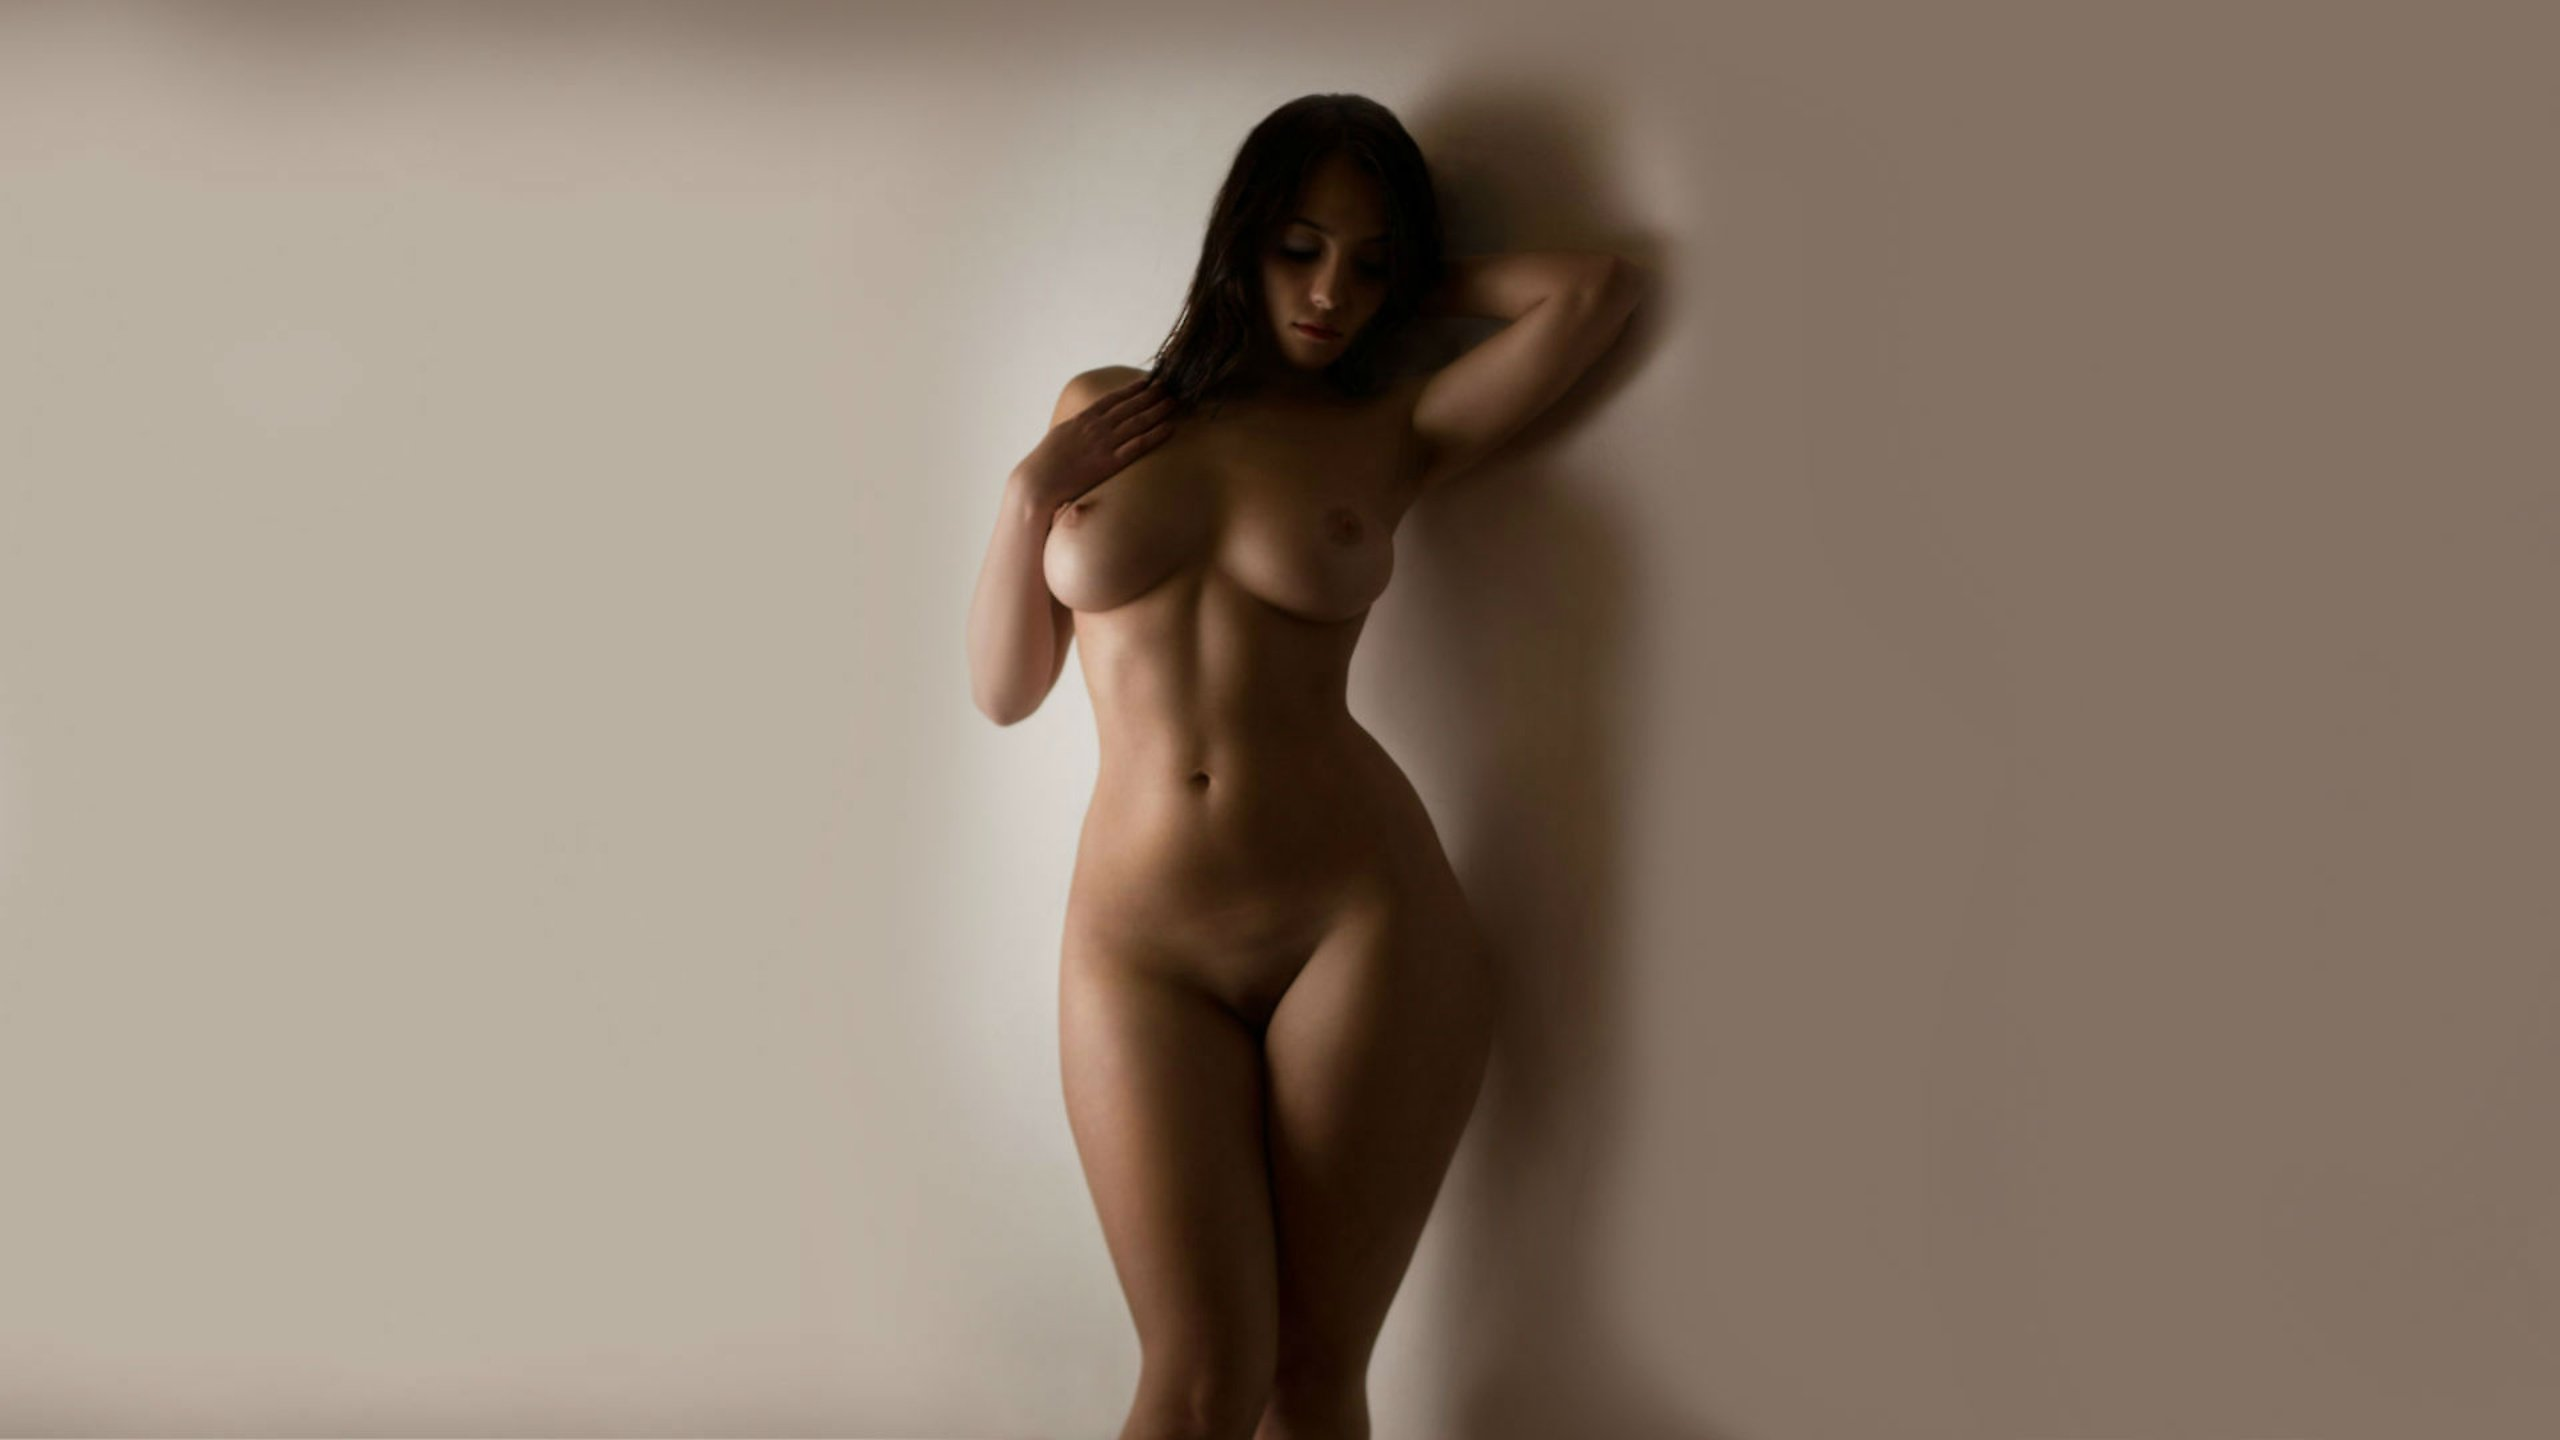 Hd Nude Women Sex Wallpaper Sexy Images